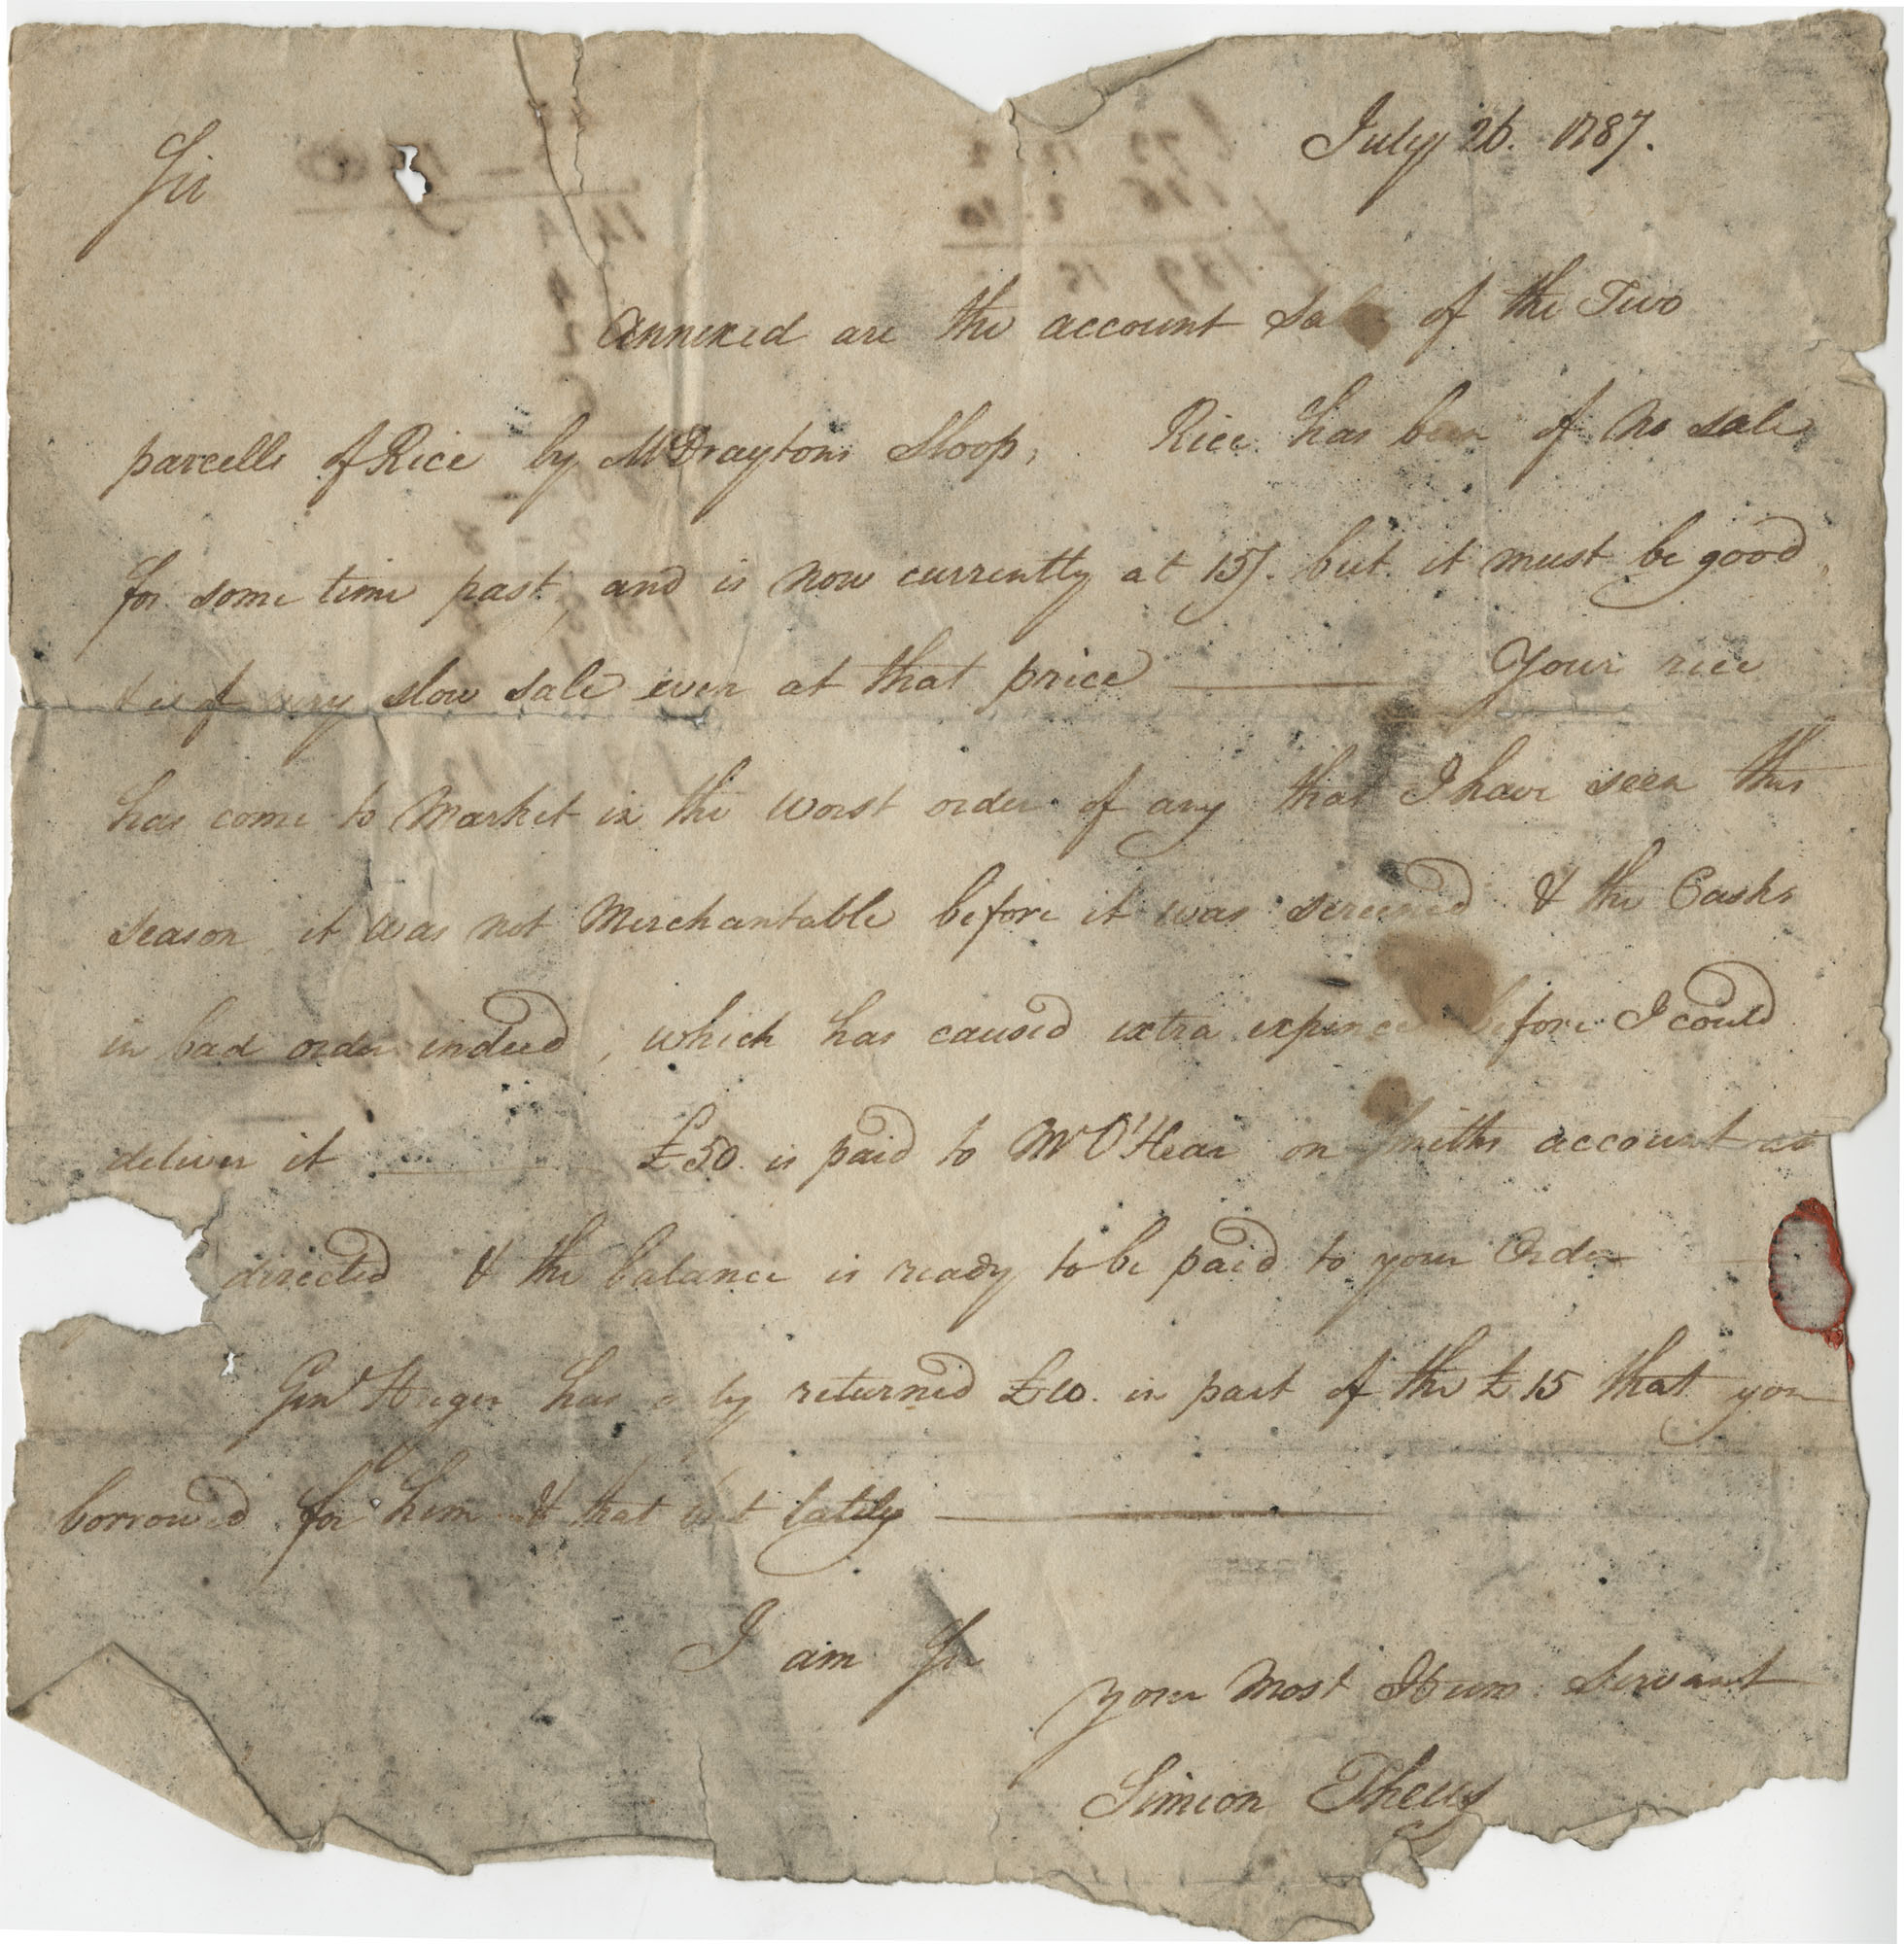 A letter from Simon Theus regarding the poor condition of John Wilson's shipments of rice, July 26, 1787